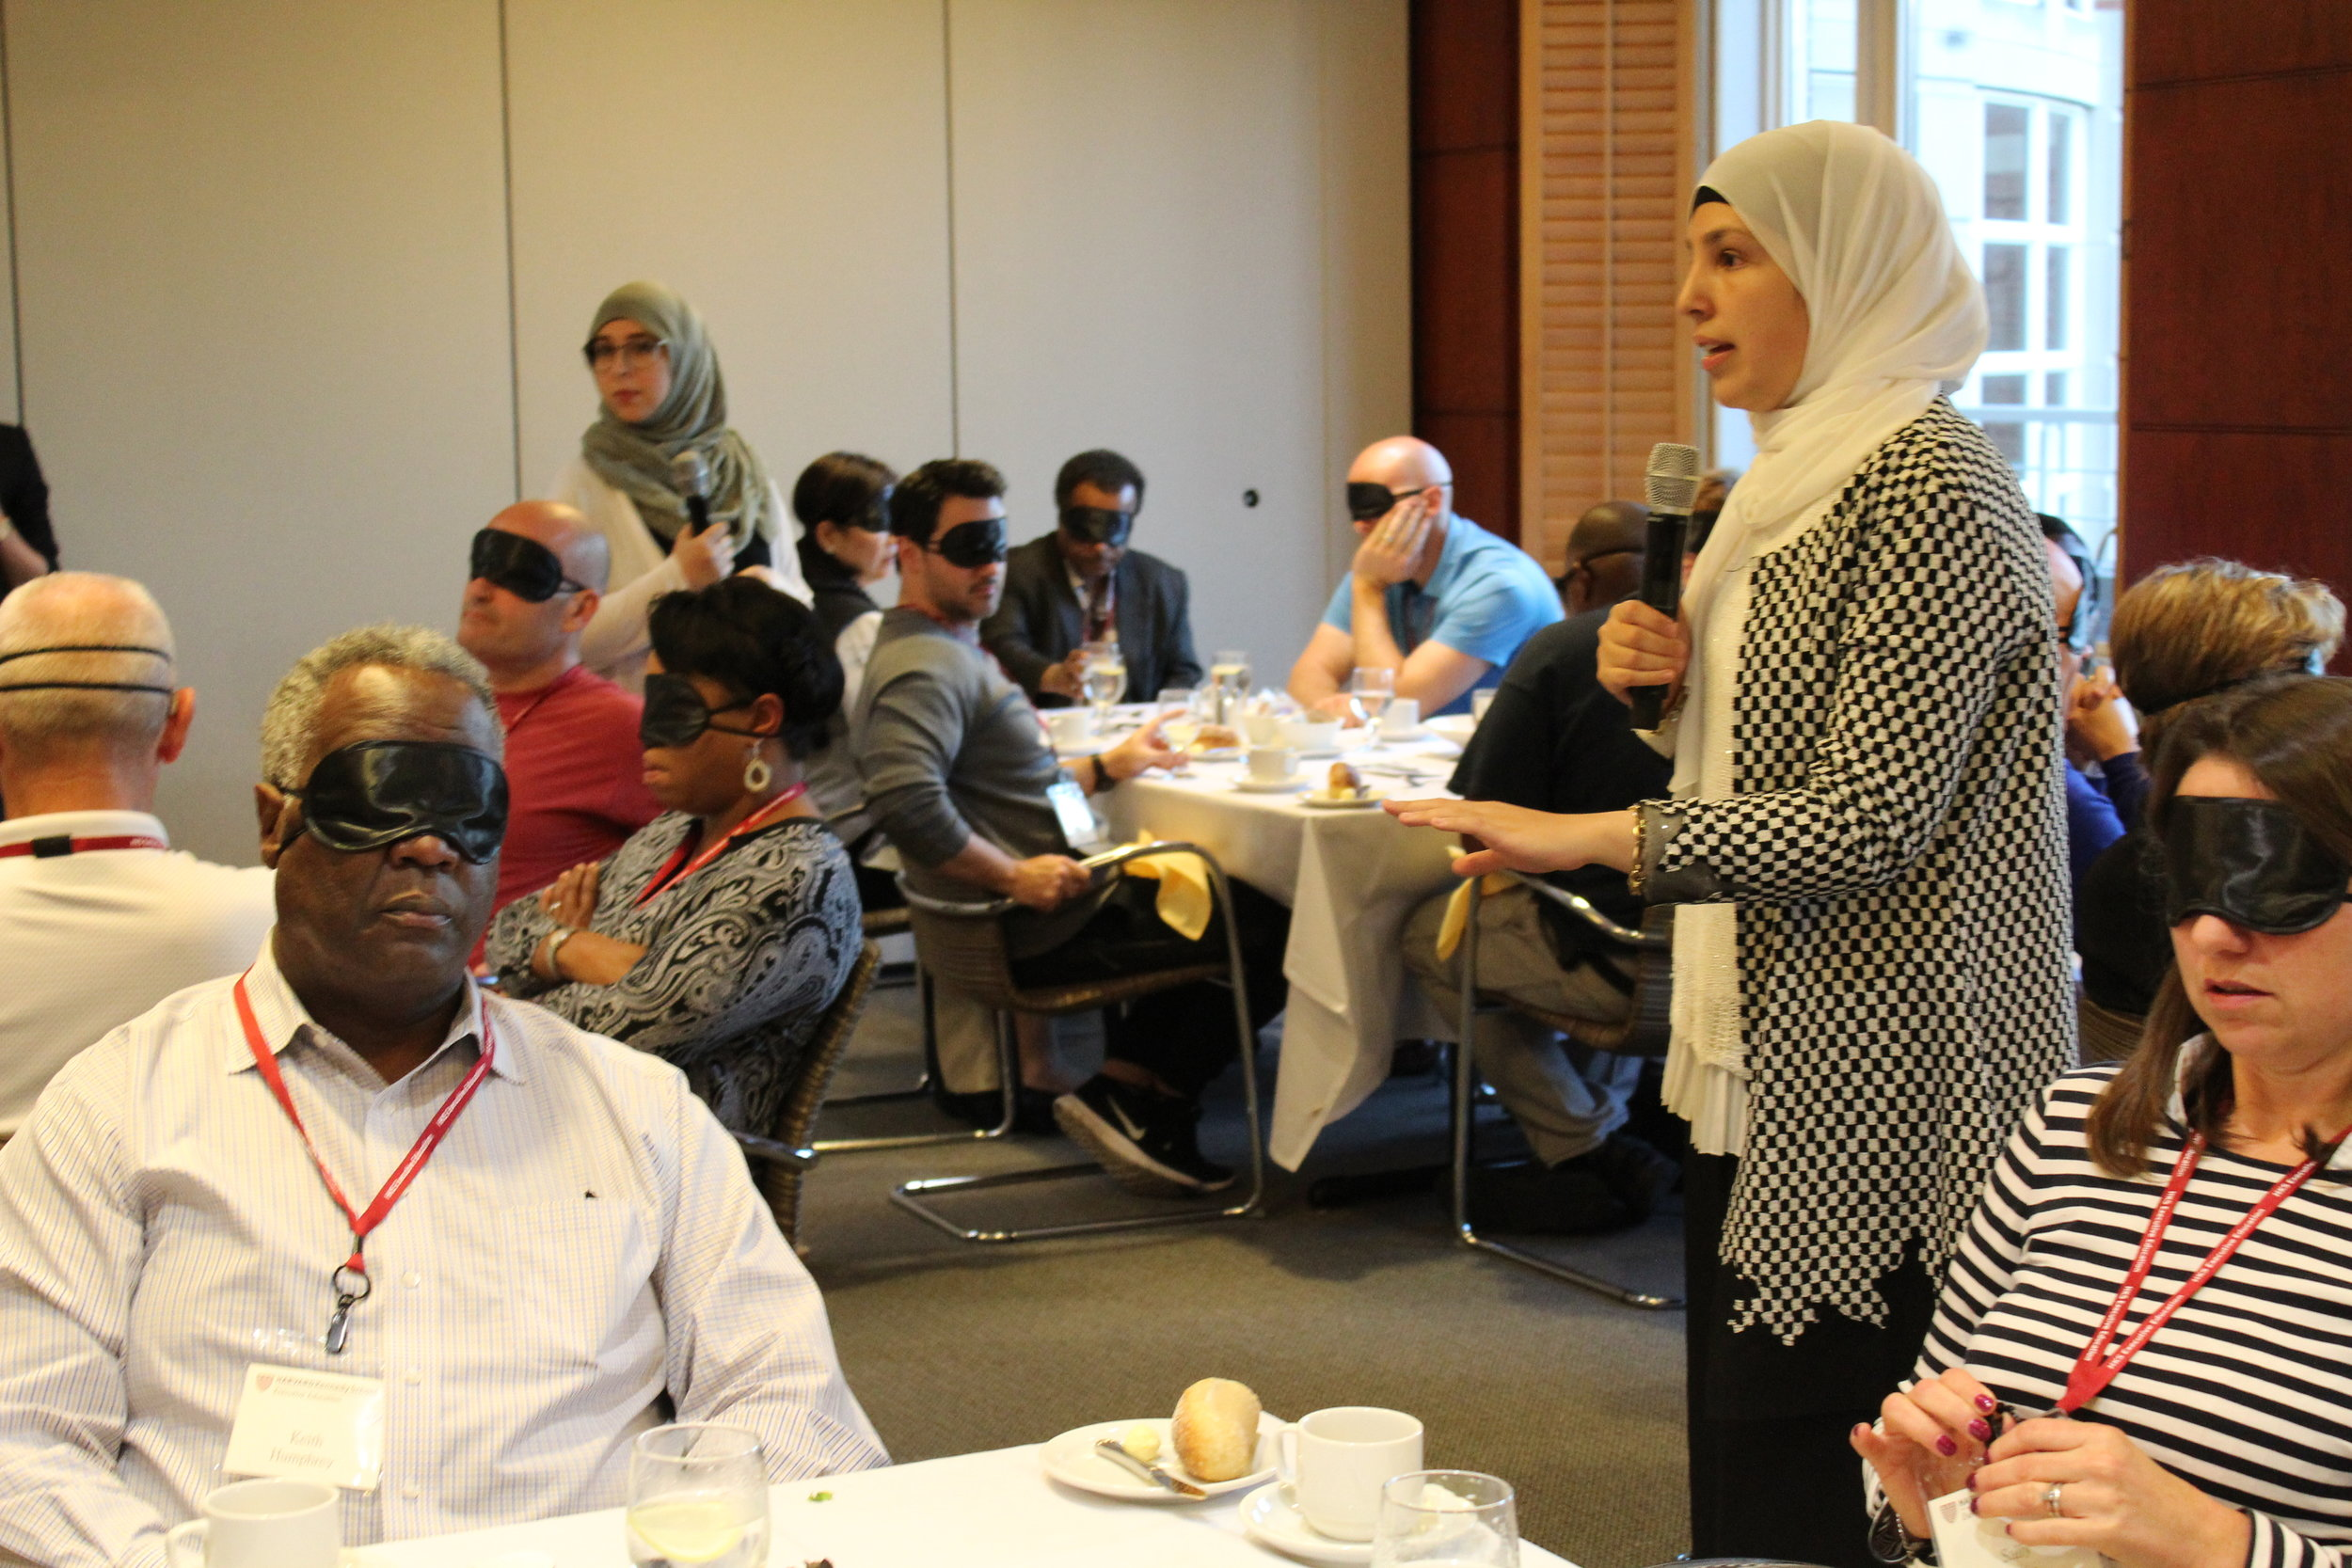 Founder and CEO Sara Minkara speaks into a microphone, facilitating a discussion in a room full of blindfolded participants.